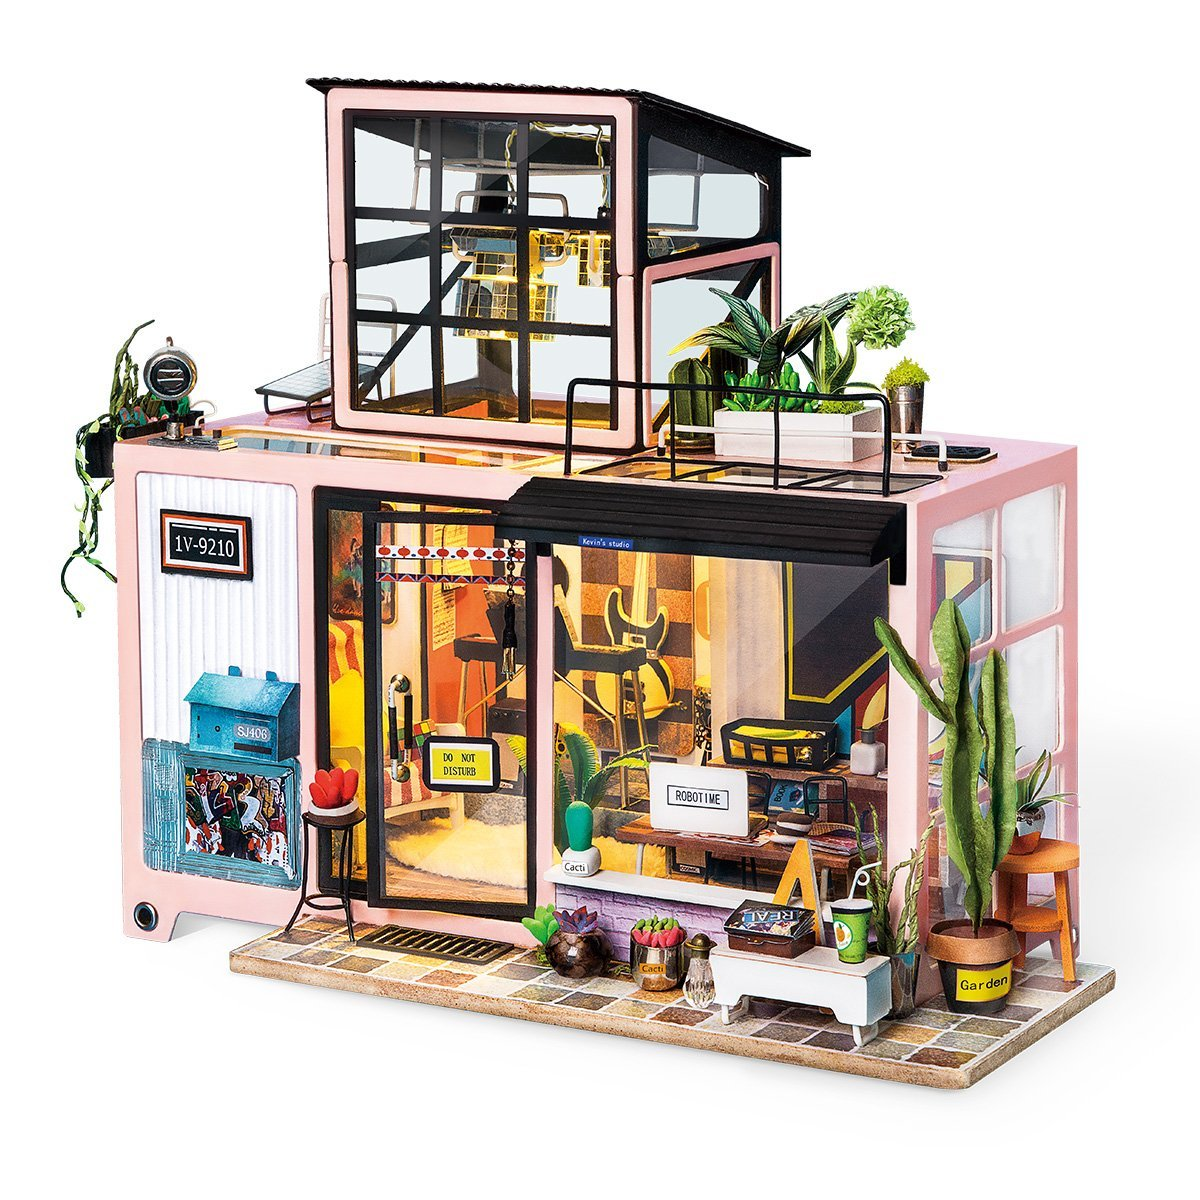 Rolife Dollhouse DIY Miniature Room Set-Wood Craft Construction Kit-Wooden  Model Building Toys-Mini Doll House-Creative Birthday Gifts for Boys Girls